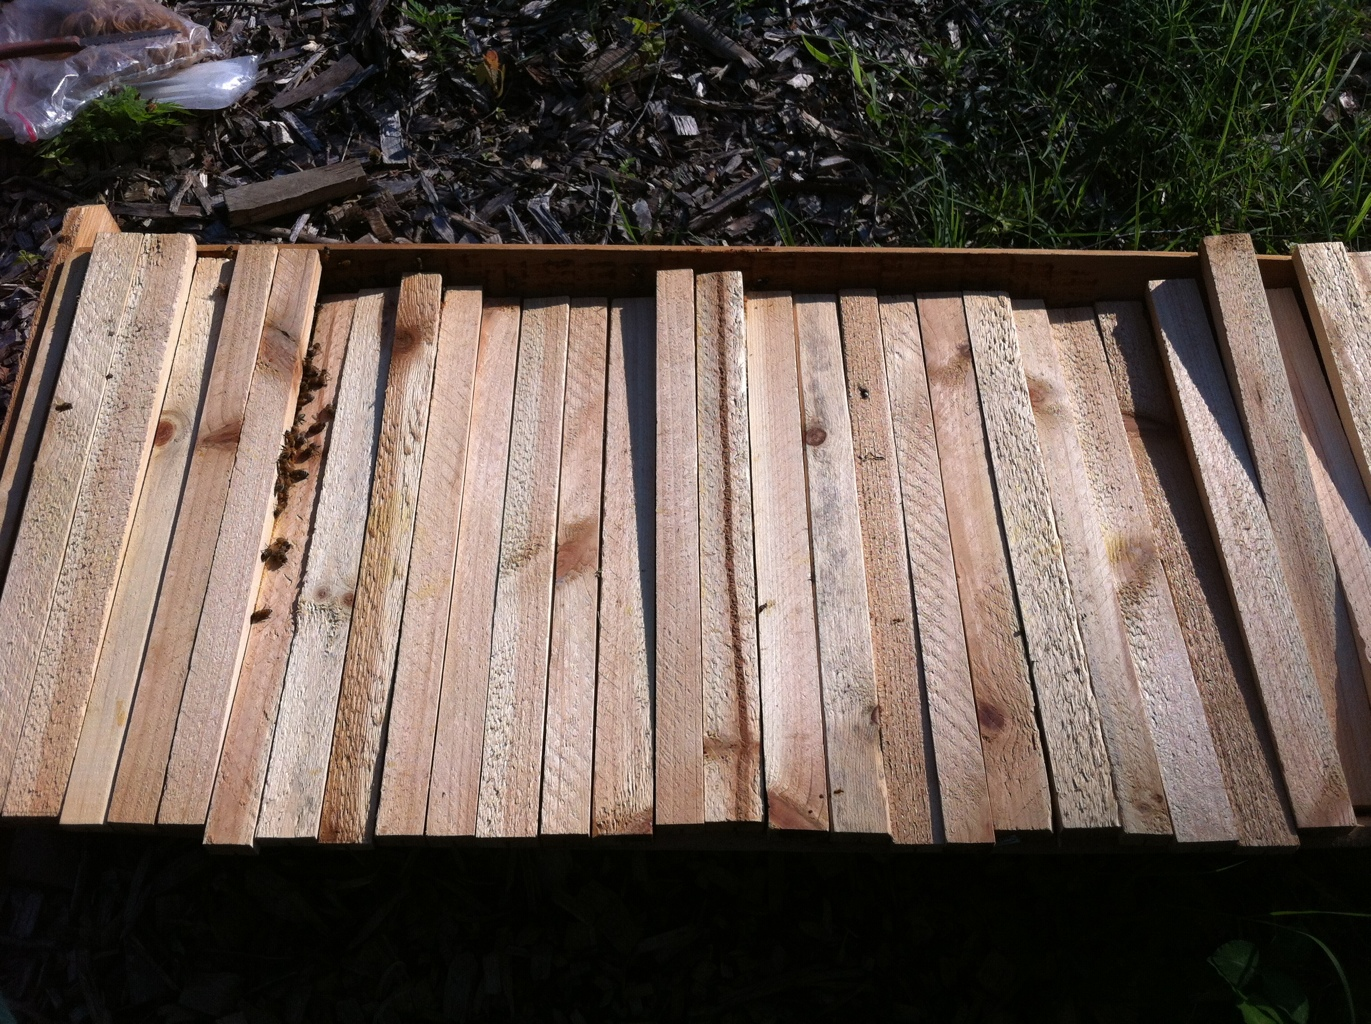 Top bar hive with slipping top bars